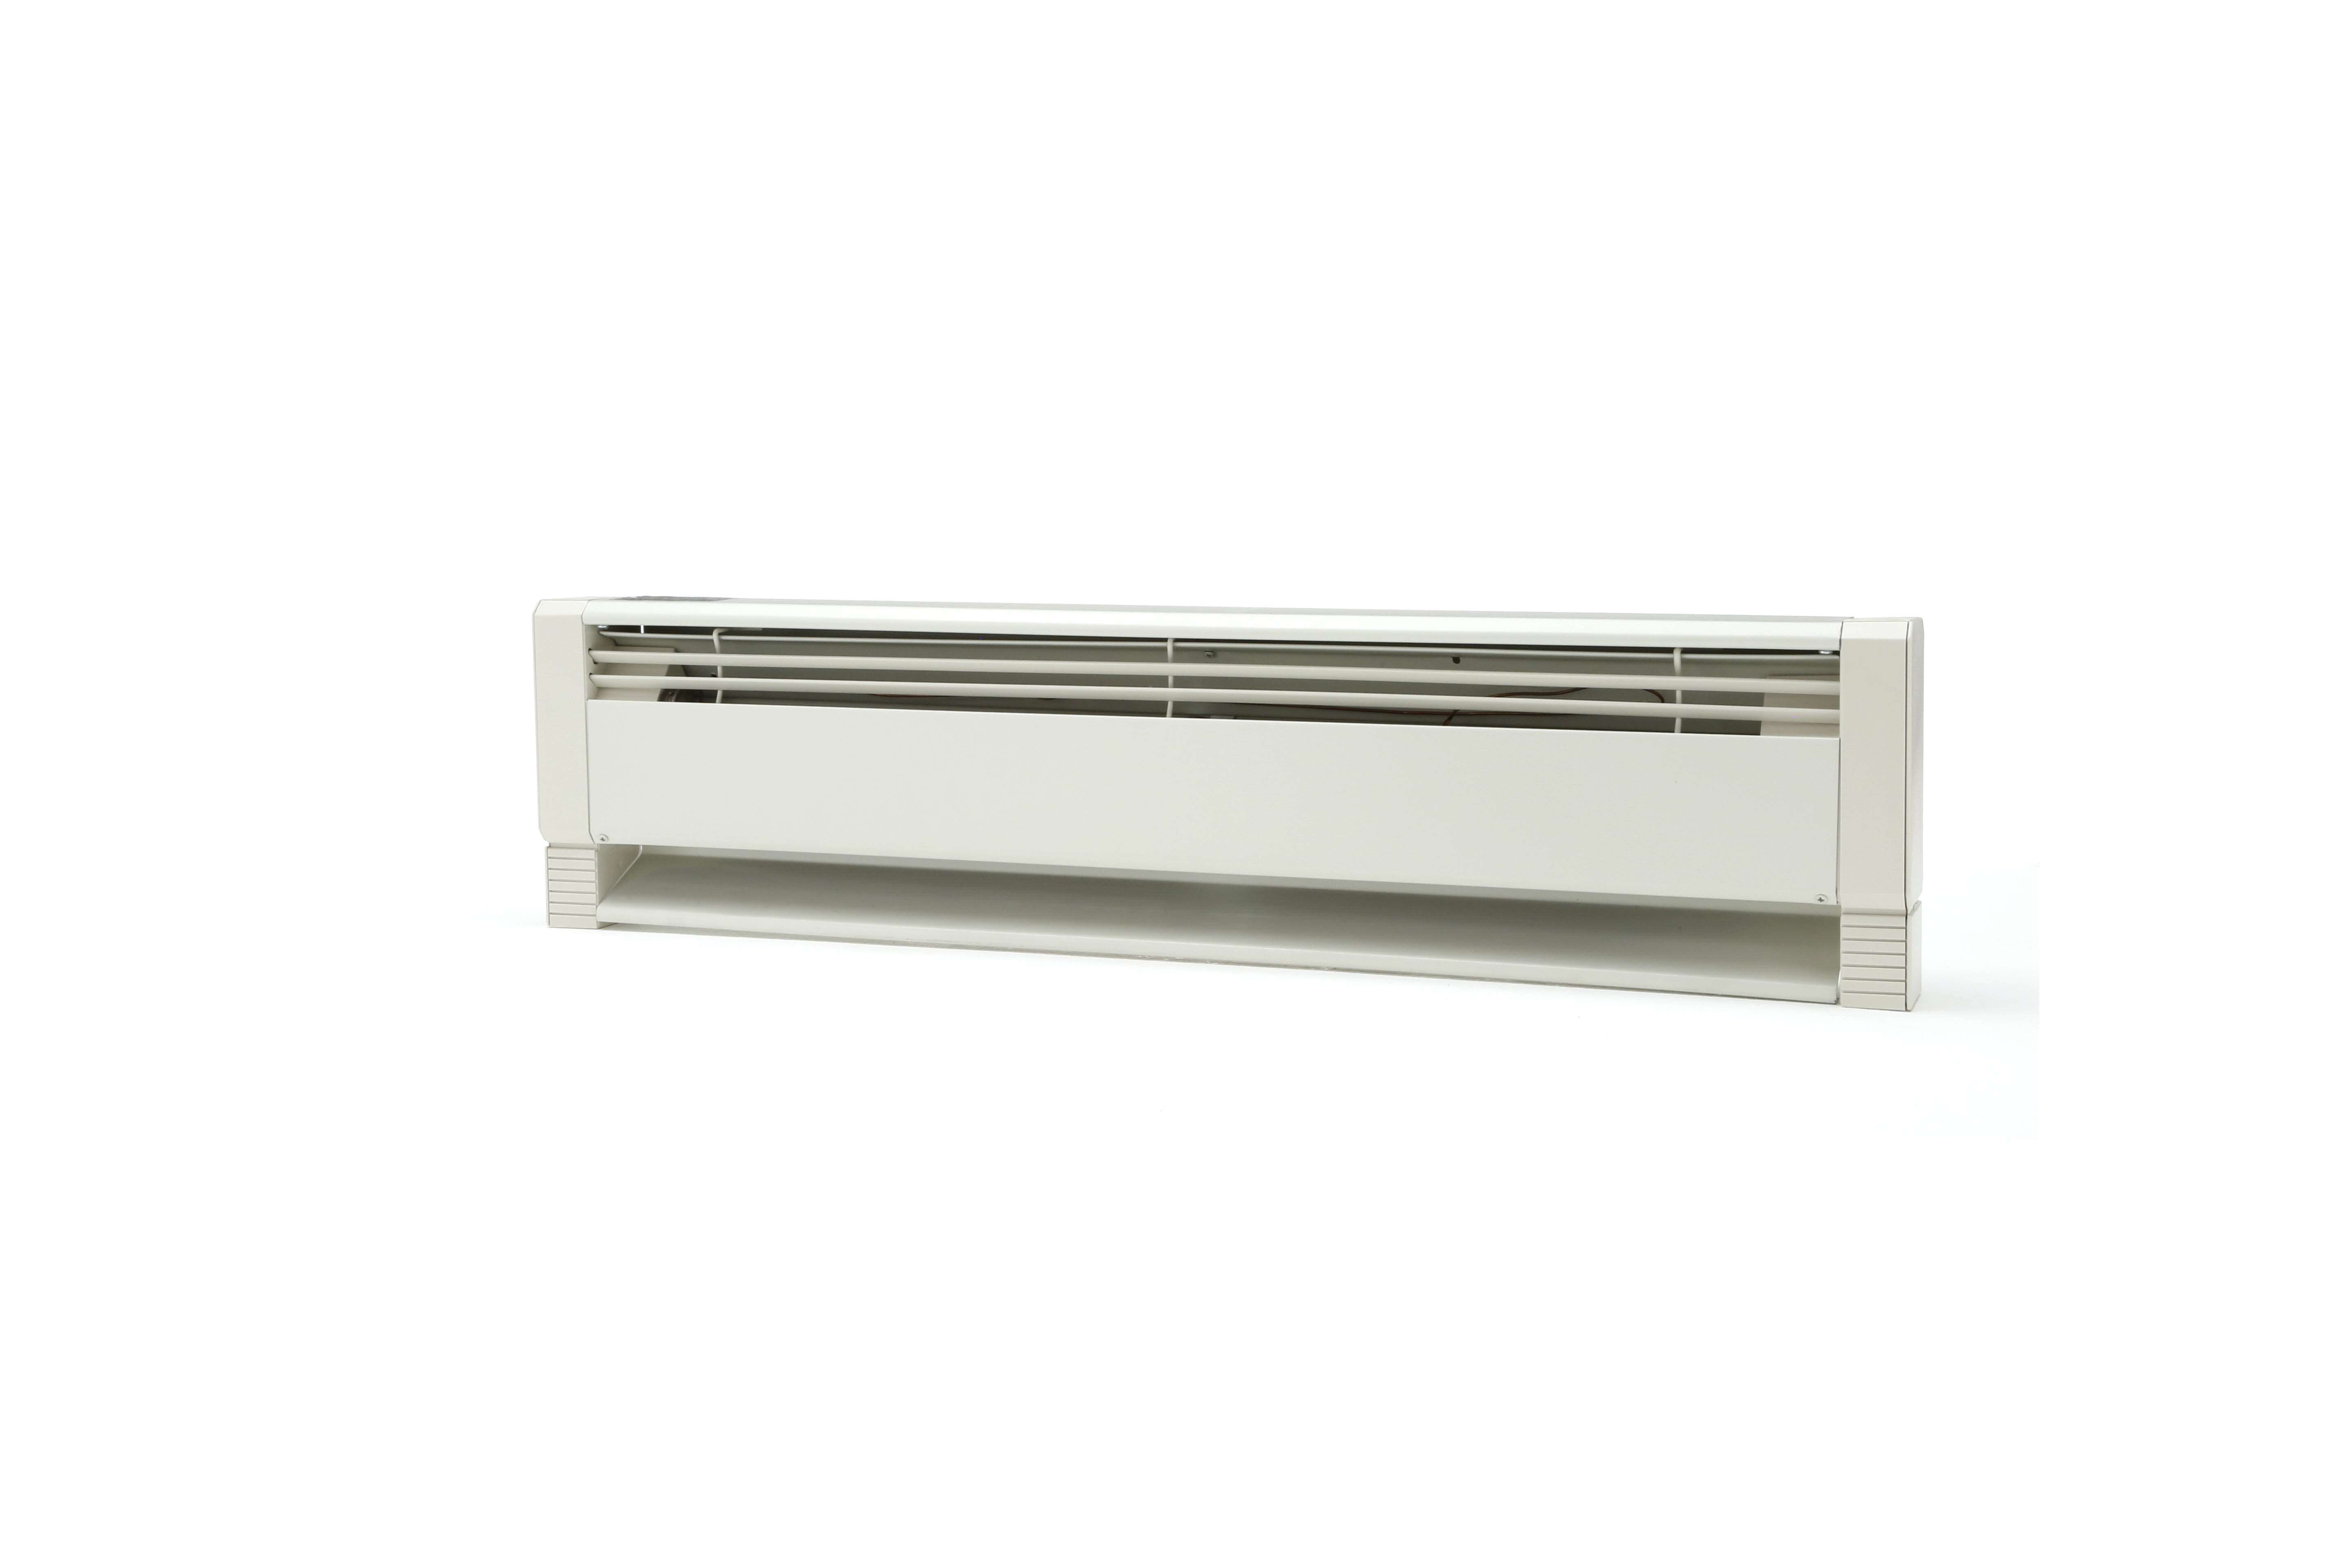 MLY HBB1008 1,000W AT 208V,ELECTRIC/HYDRONIC BASEBOARD HEATER